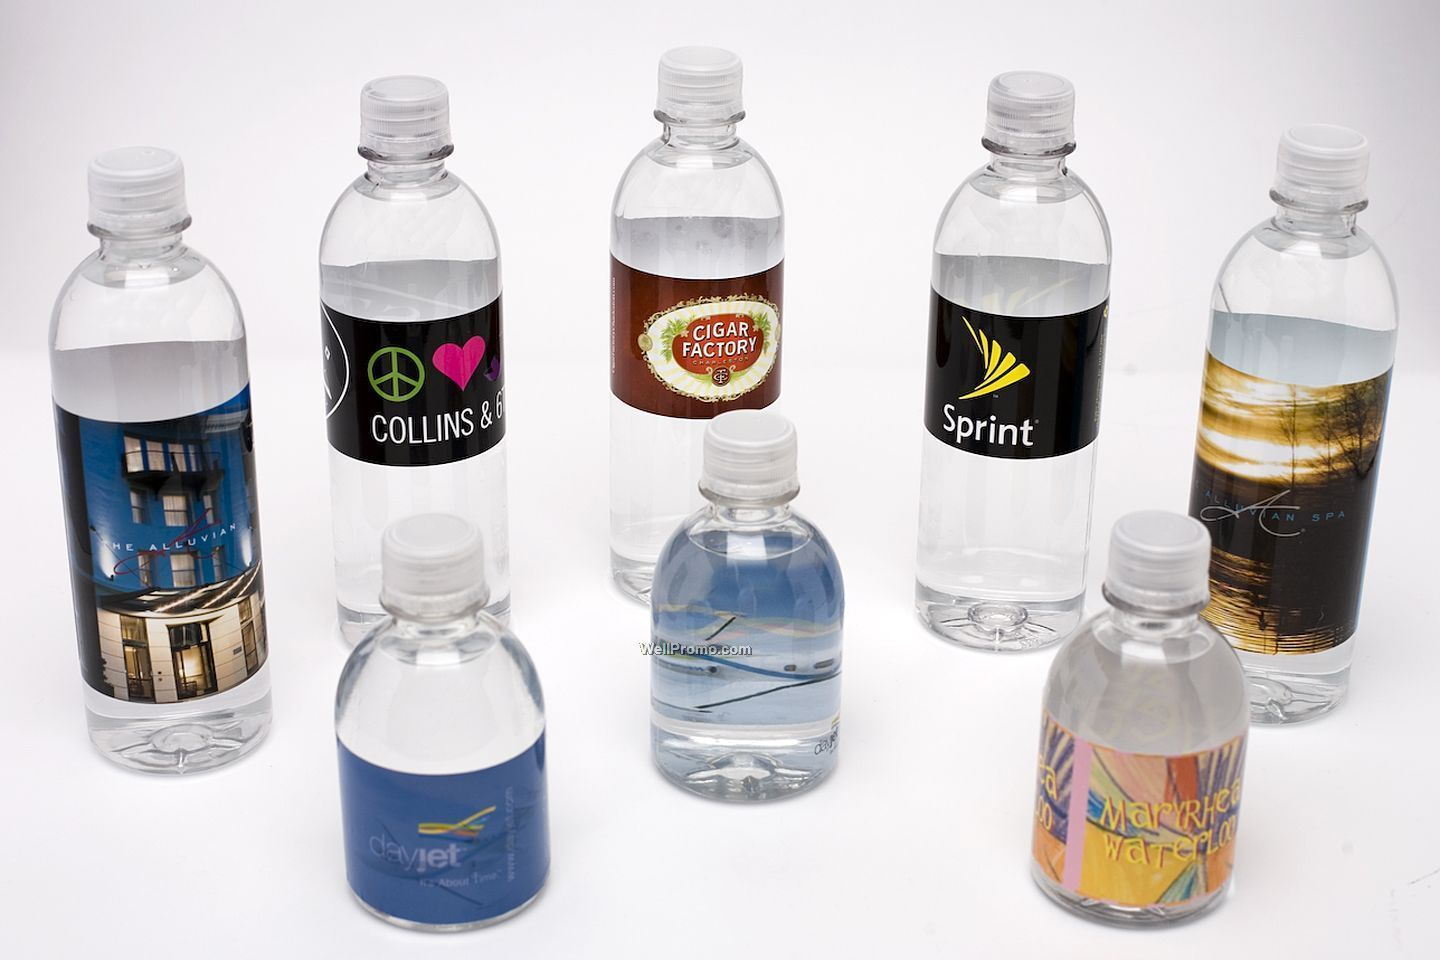 17 Best images about Bottled Water on Pinterest | Traditional ...